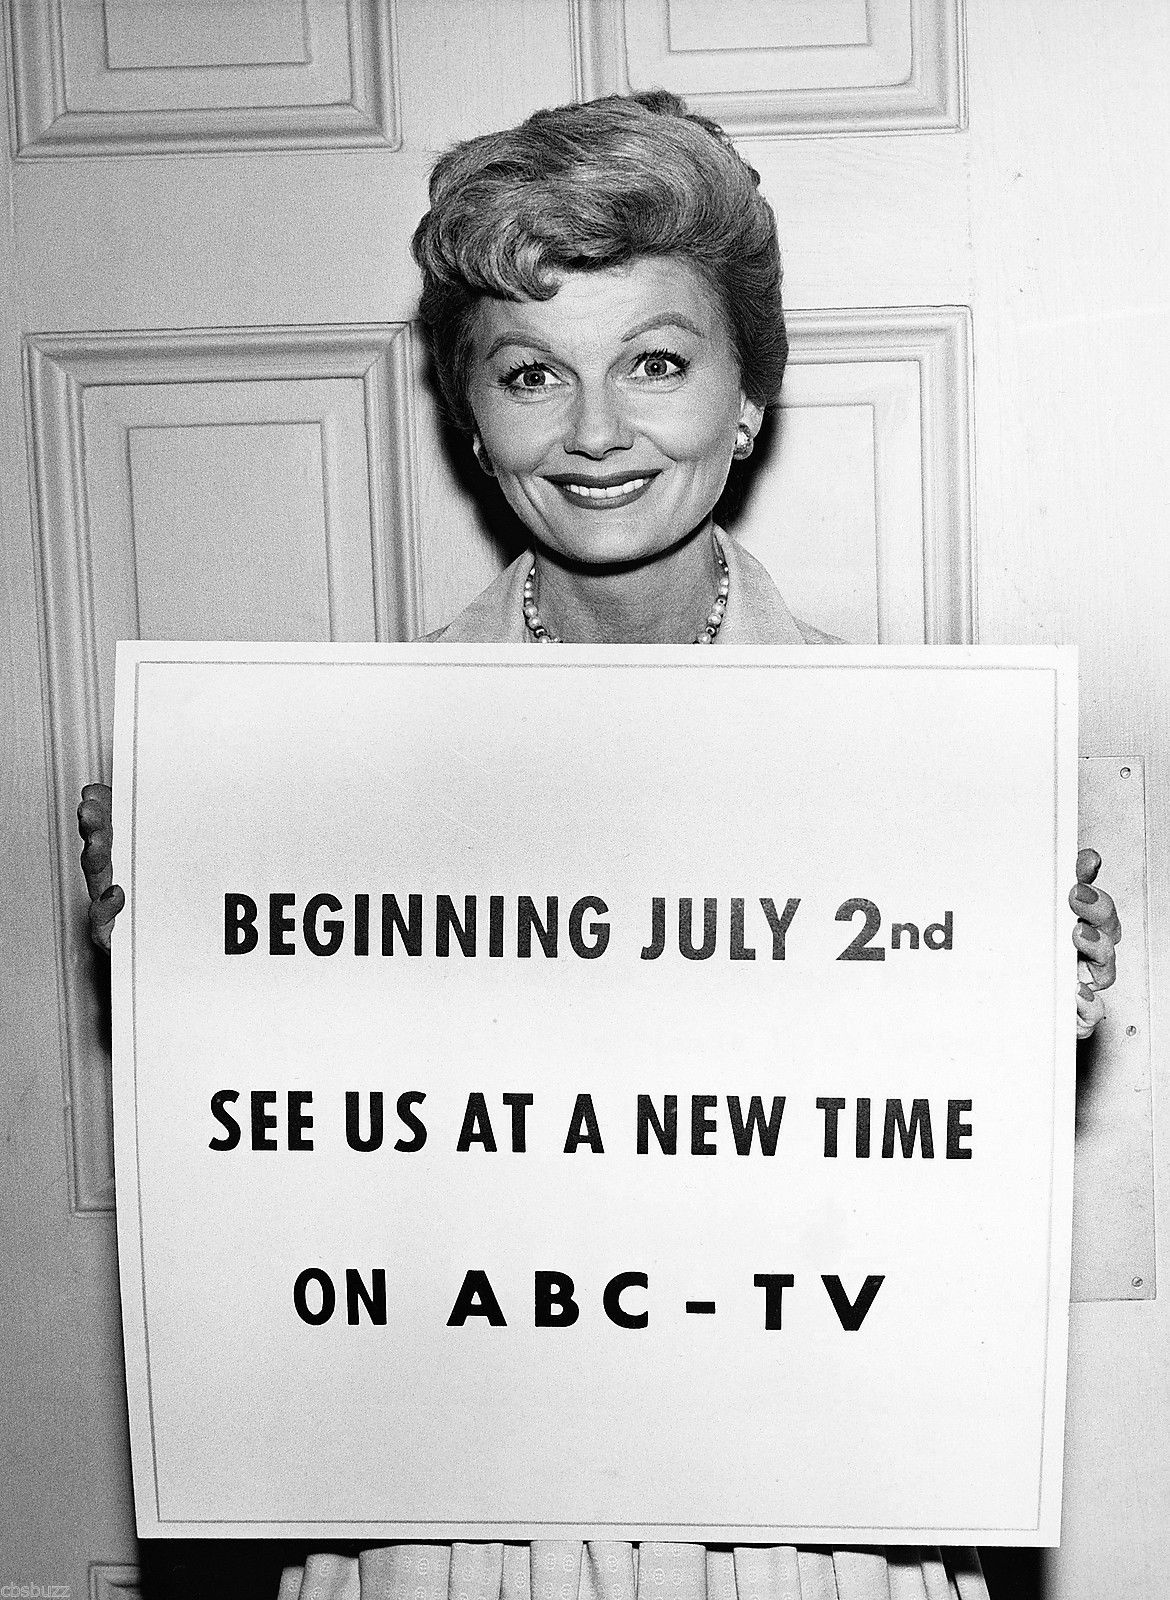 LEAVE_IT_TO_BEAVER_-_TV_SHOW_PHOTO_BW36